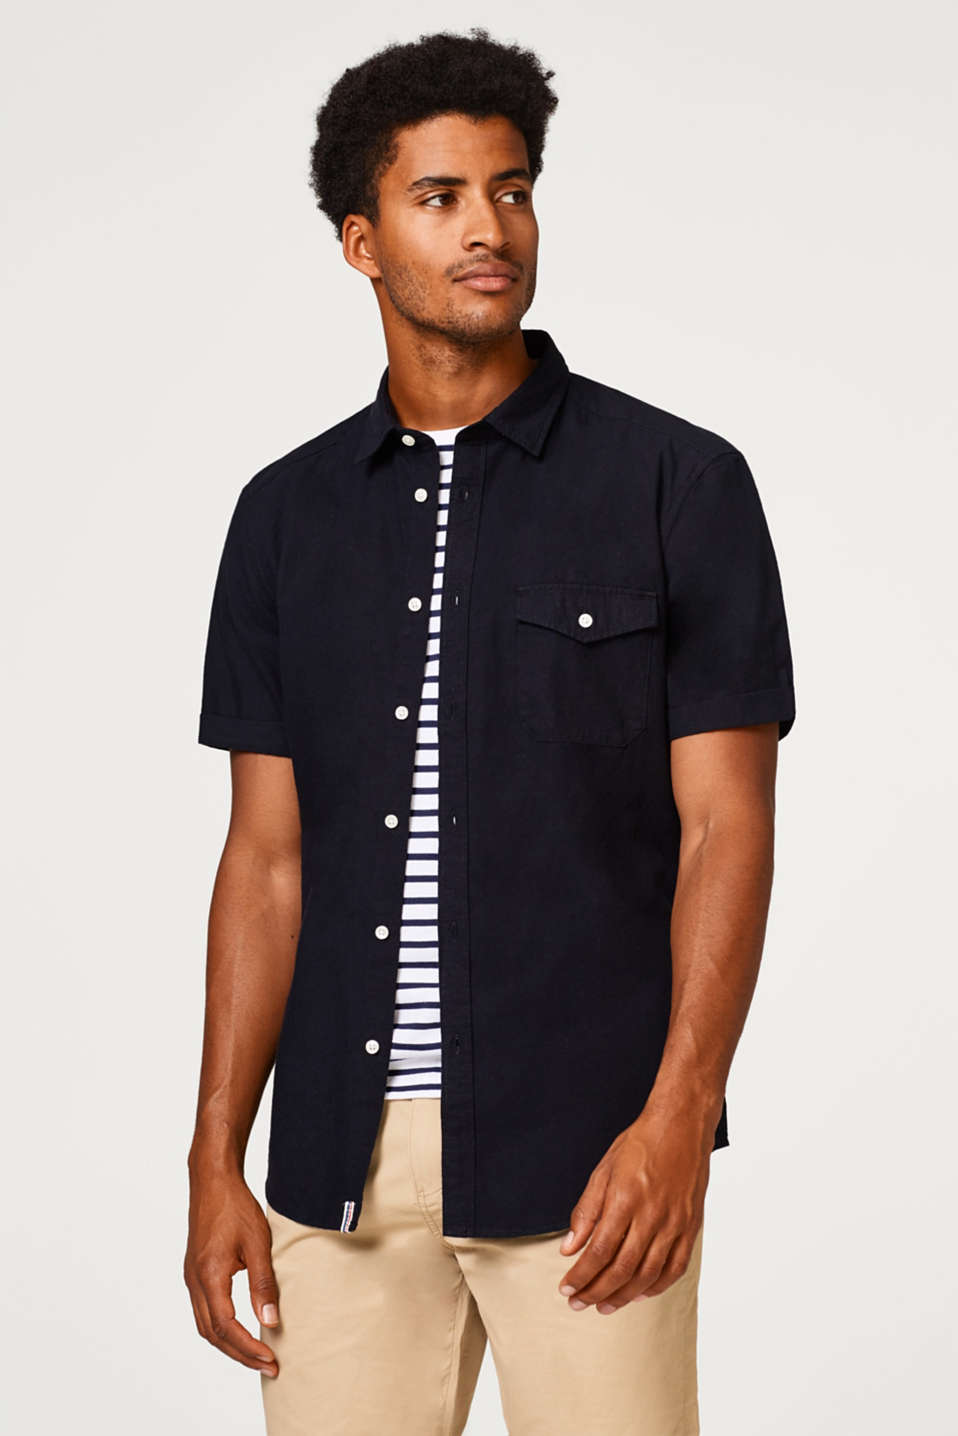 Esprit - Short sleeve shirt in pure cotton